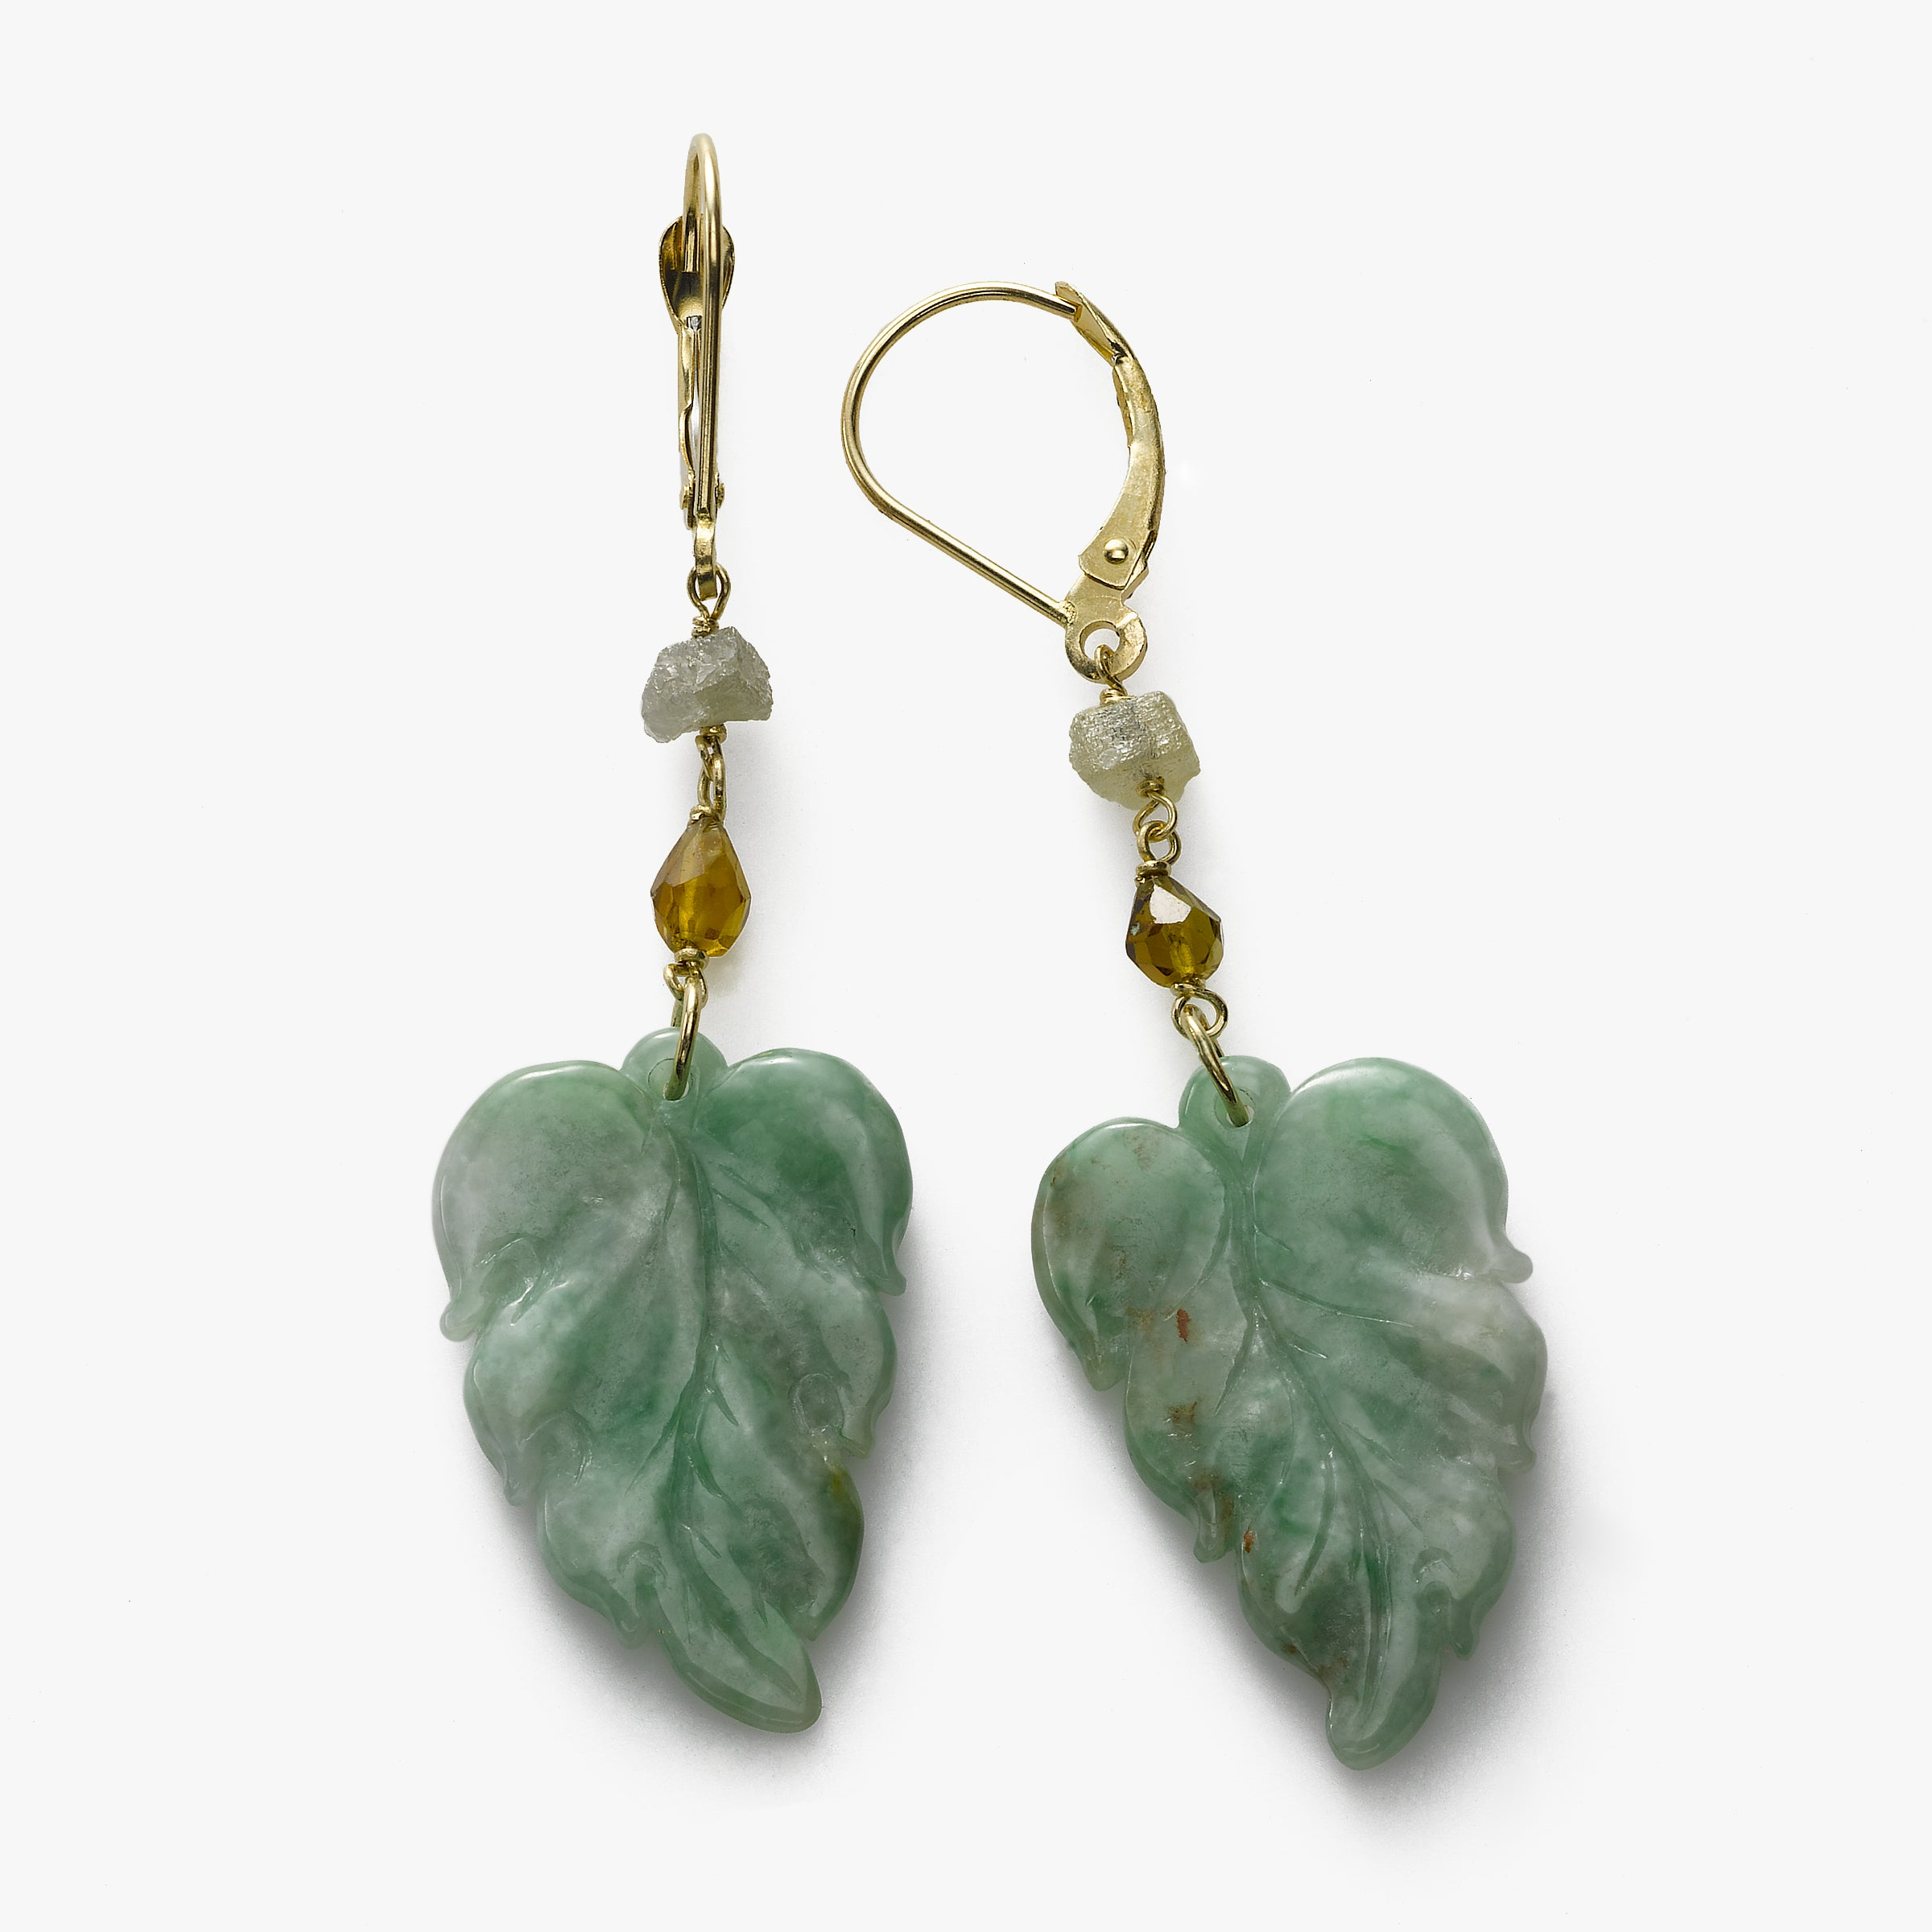 Jade Leaves Earrings, Tourmaline, 14K Yellow Gold